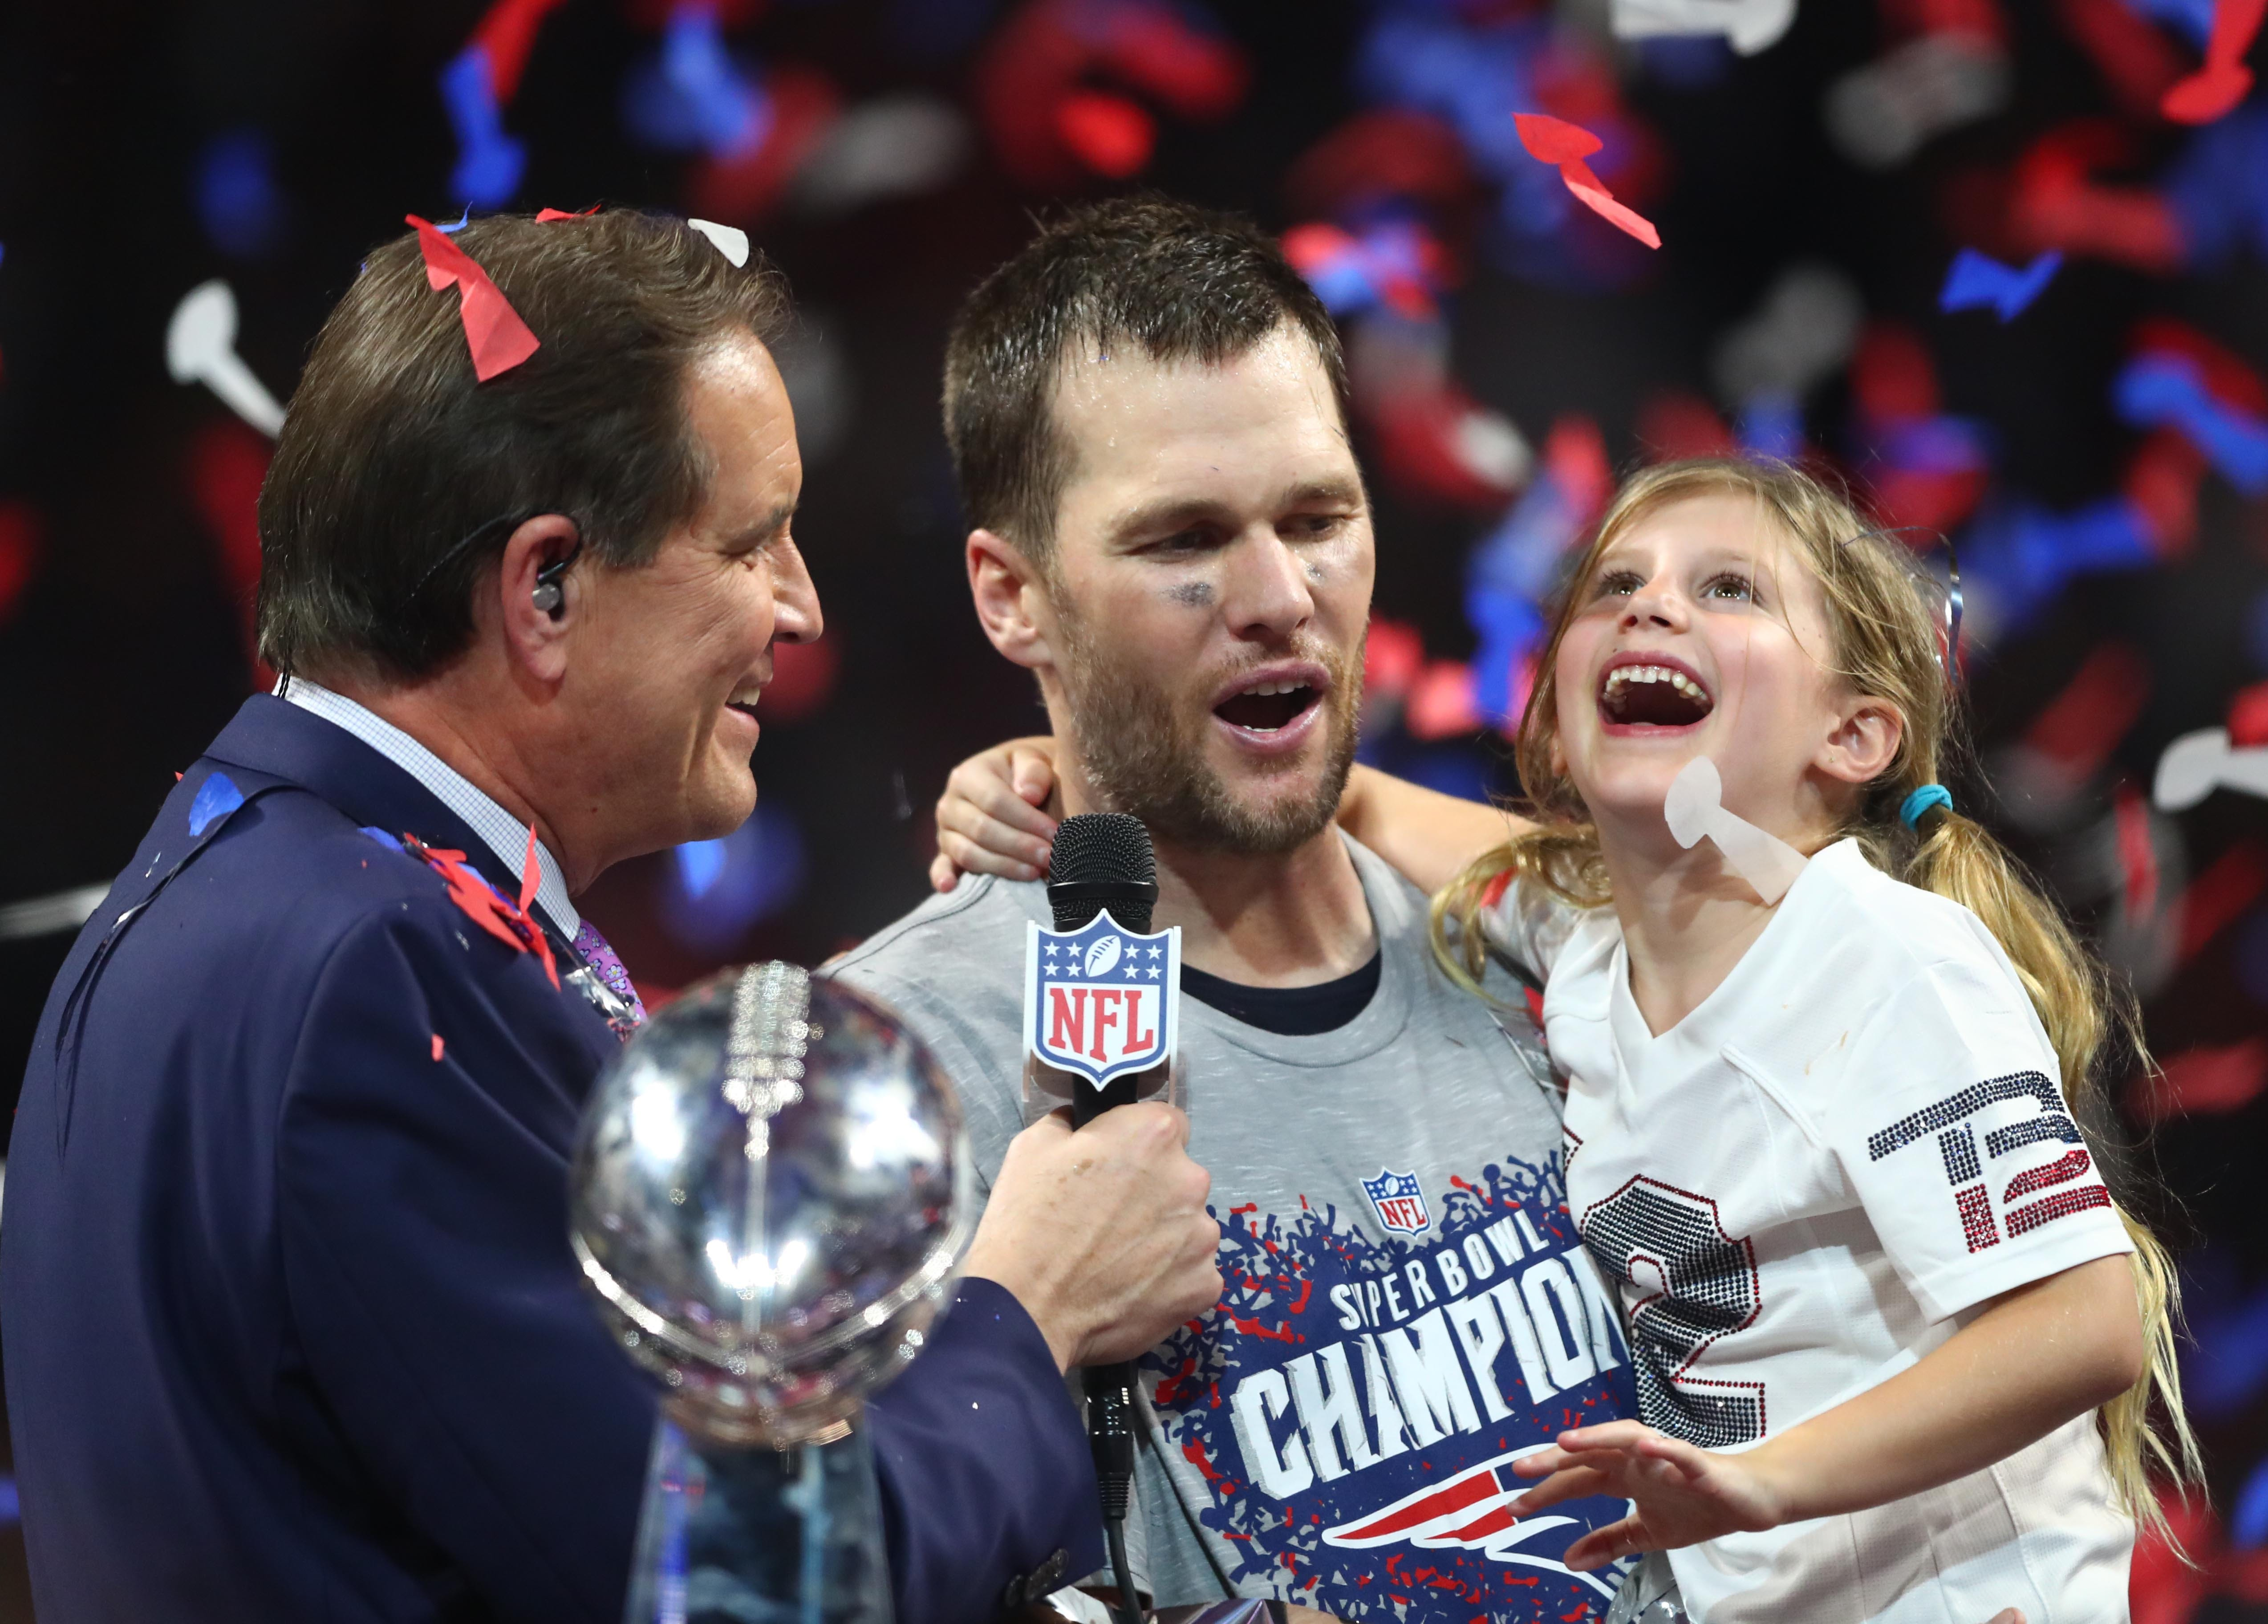 Tom Brady is interviewed by CBS' Jim Nantz after defeating the Rams in Super Bowl LIII.